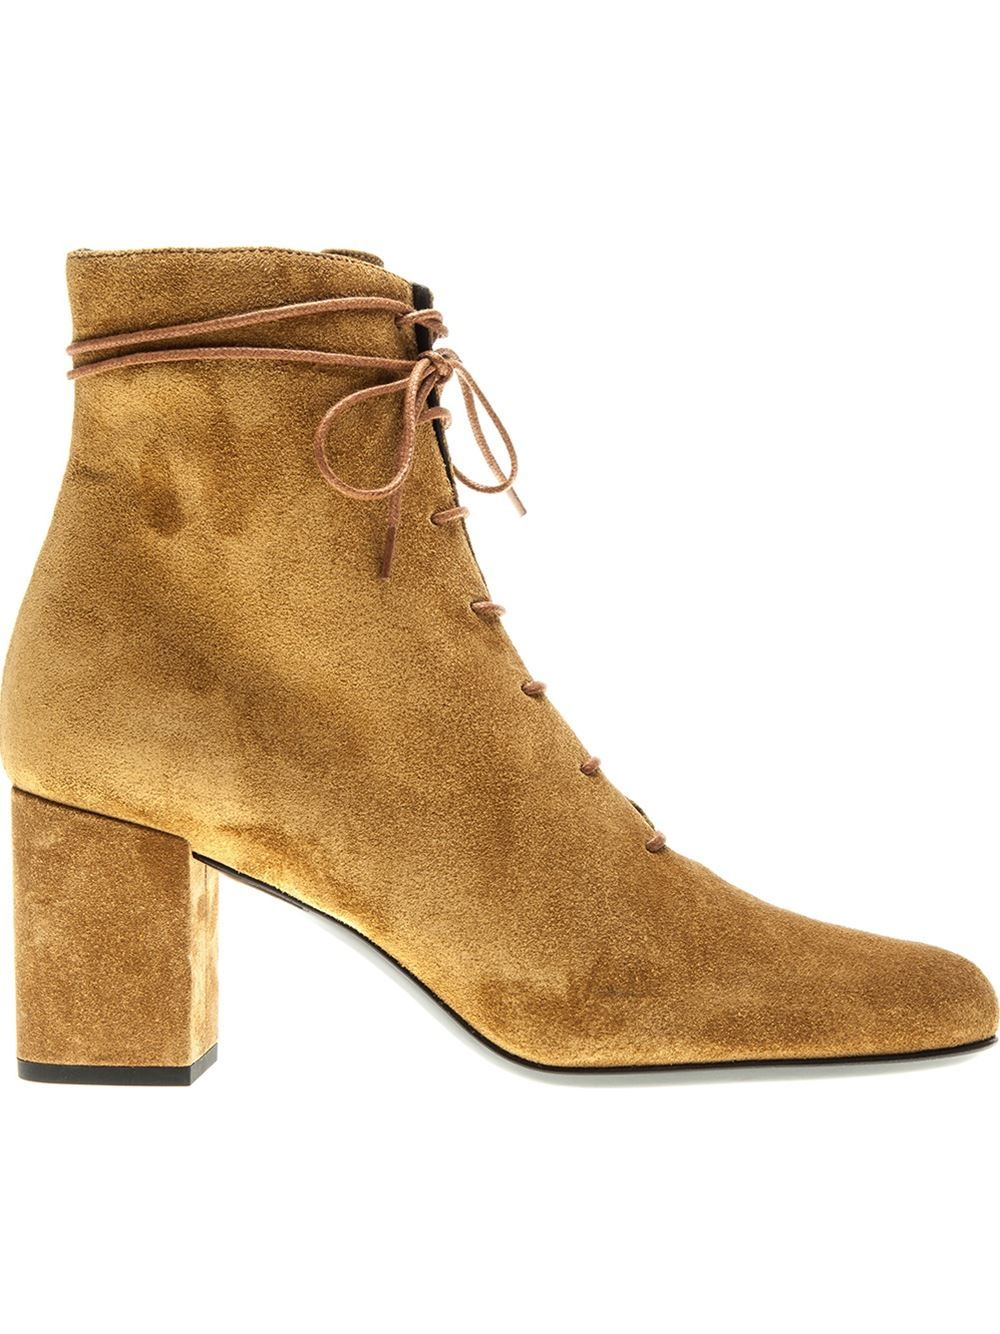 Yves Saint Laurent Suede Lace-Up Booties buy cheap professional buy cheap shop offer sale 2014 new outlet new cheap release dates BOWlljo